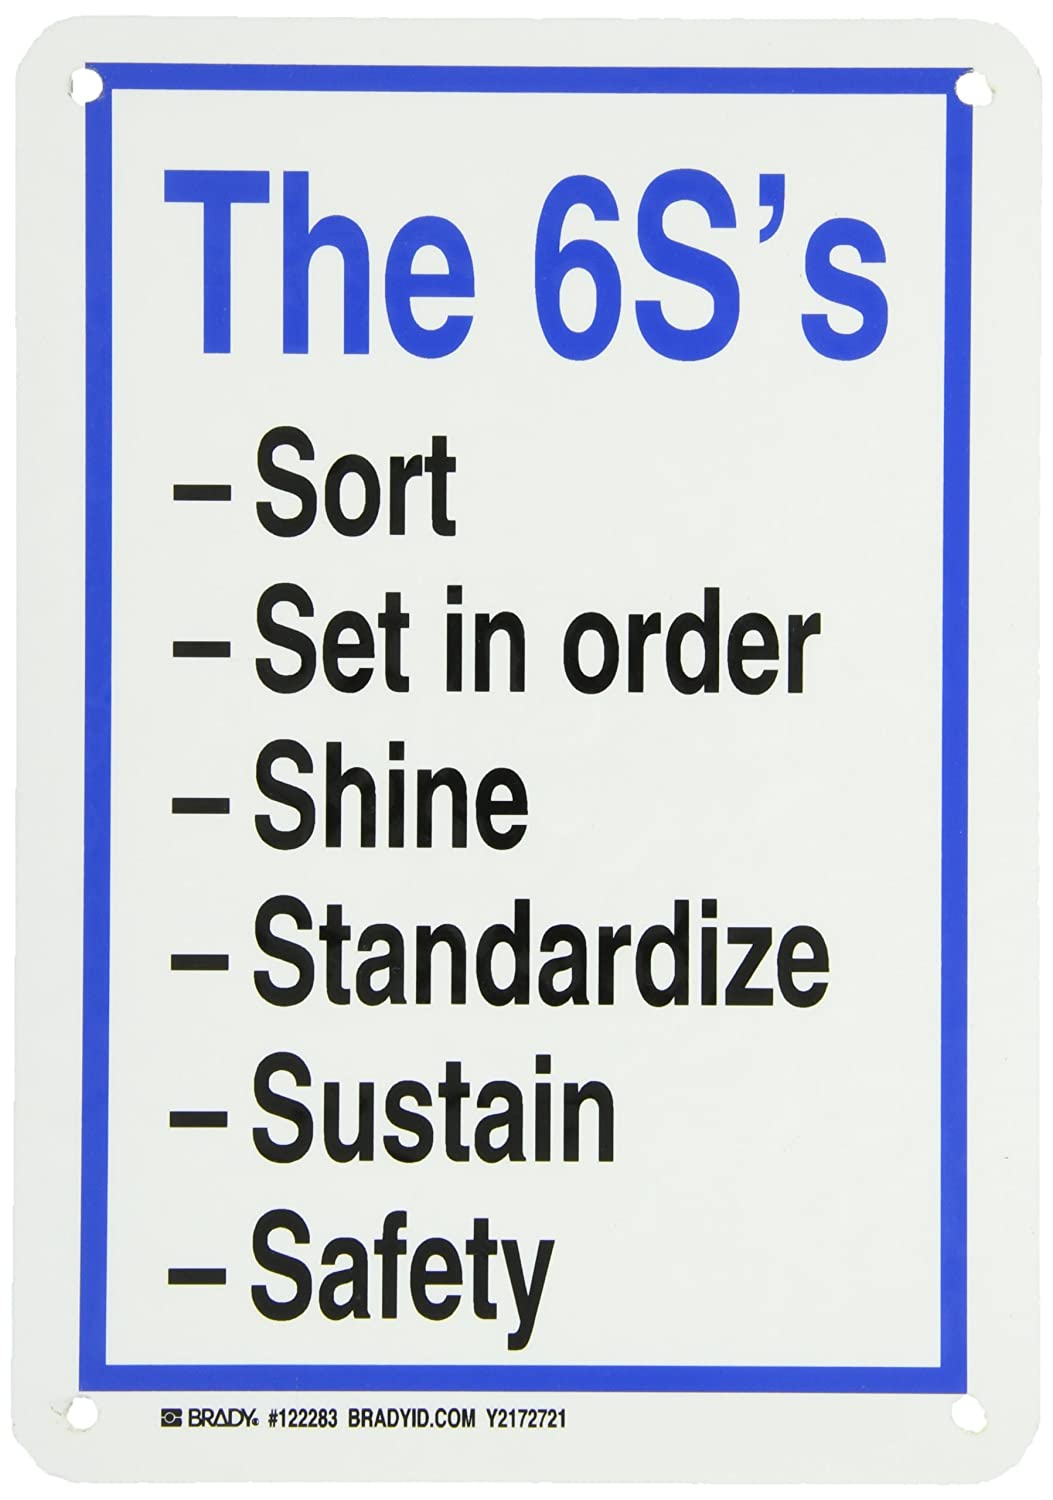 brady-122283-fiberglass-remember-6-s-sign-10-x-7-legend-the-6s-sort-set-in-order-shine-standardize-sustain-safety